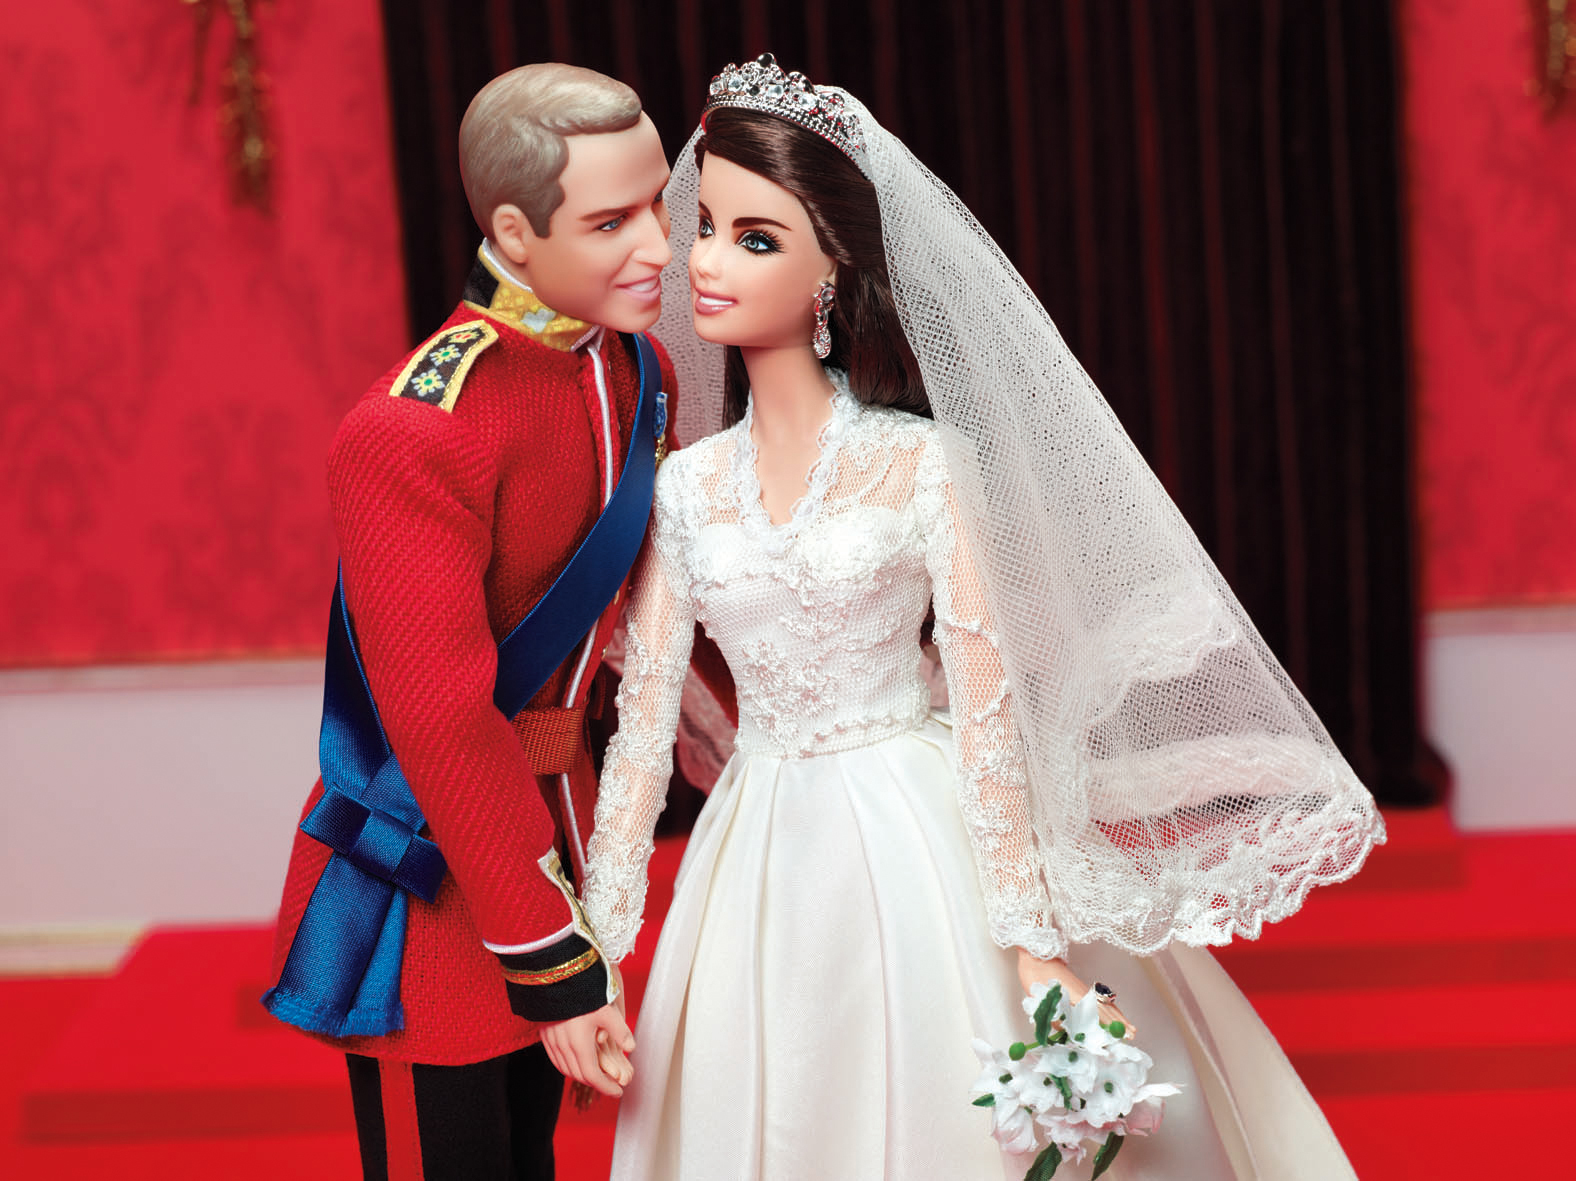 http://2.bp.blogspot.com/-_j1dbHAqvfI/Tzt1wN343JI/AAAAAAAACTY/OQH6-YKapvw/s1600/William_and_Catherine_Royal_Wedding_Valentine%2527s_Day_Wire_Image_FINAL_highres.jpg